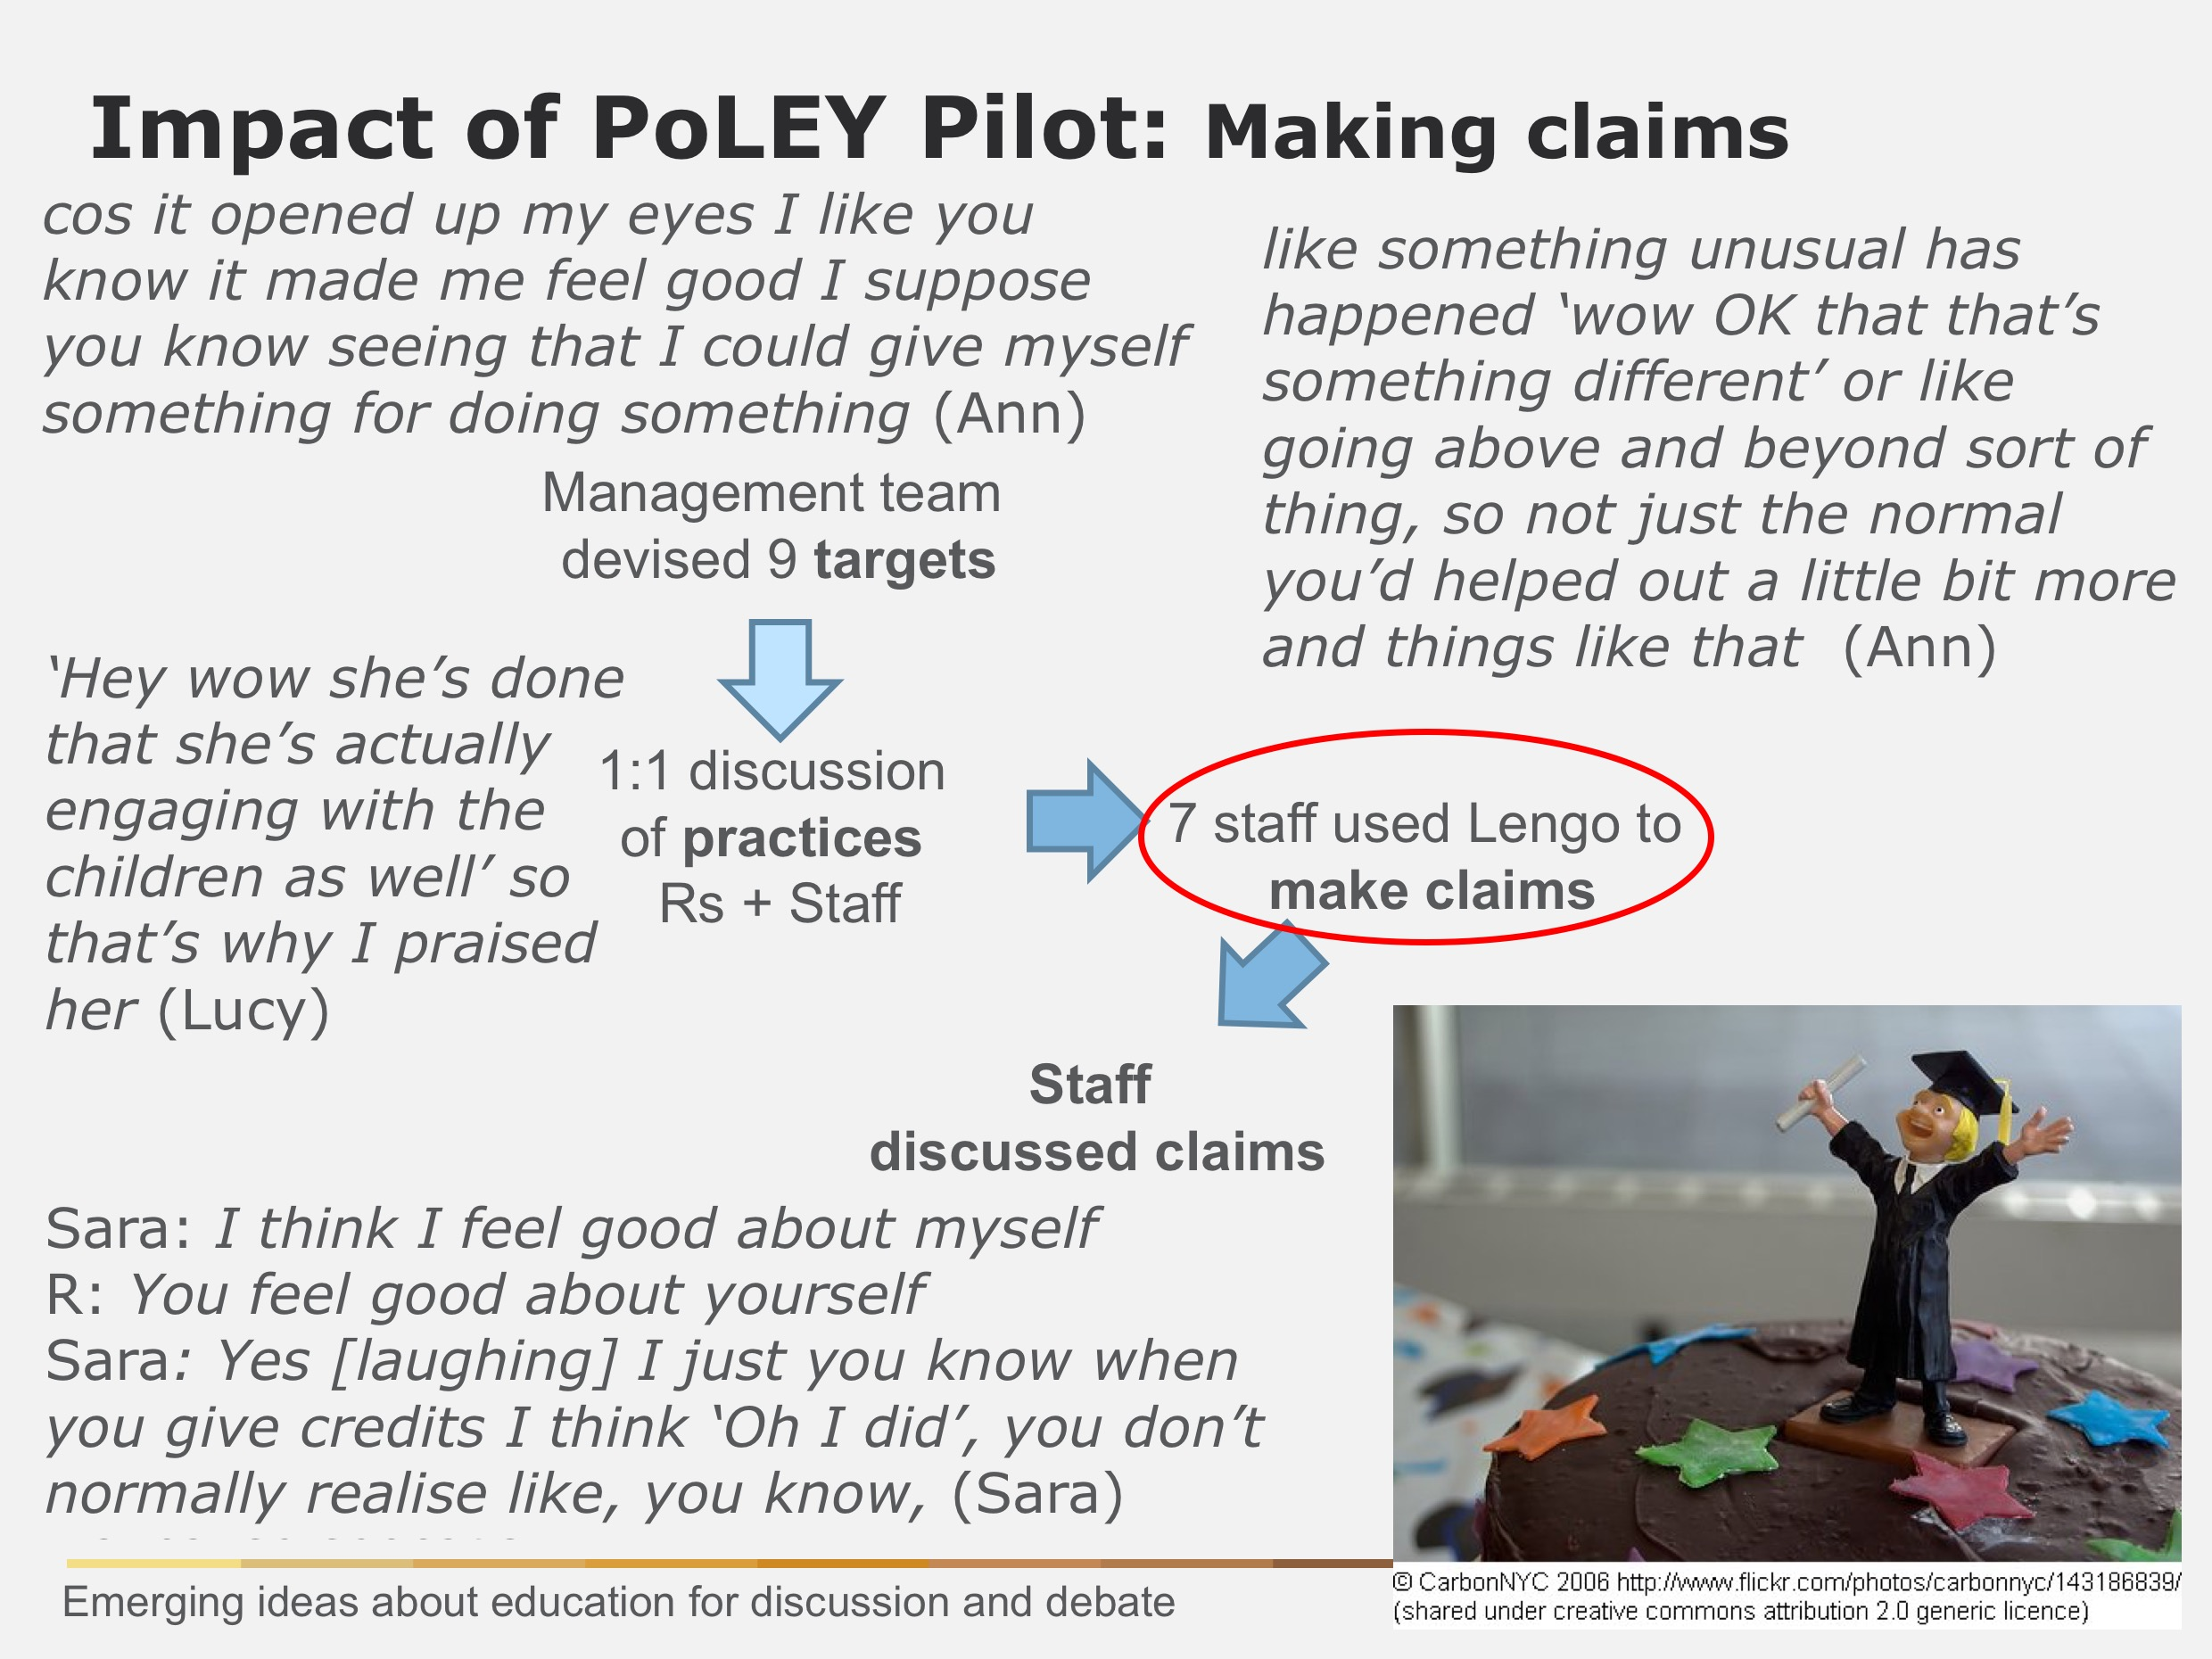 PoLEY Pilot making claims